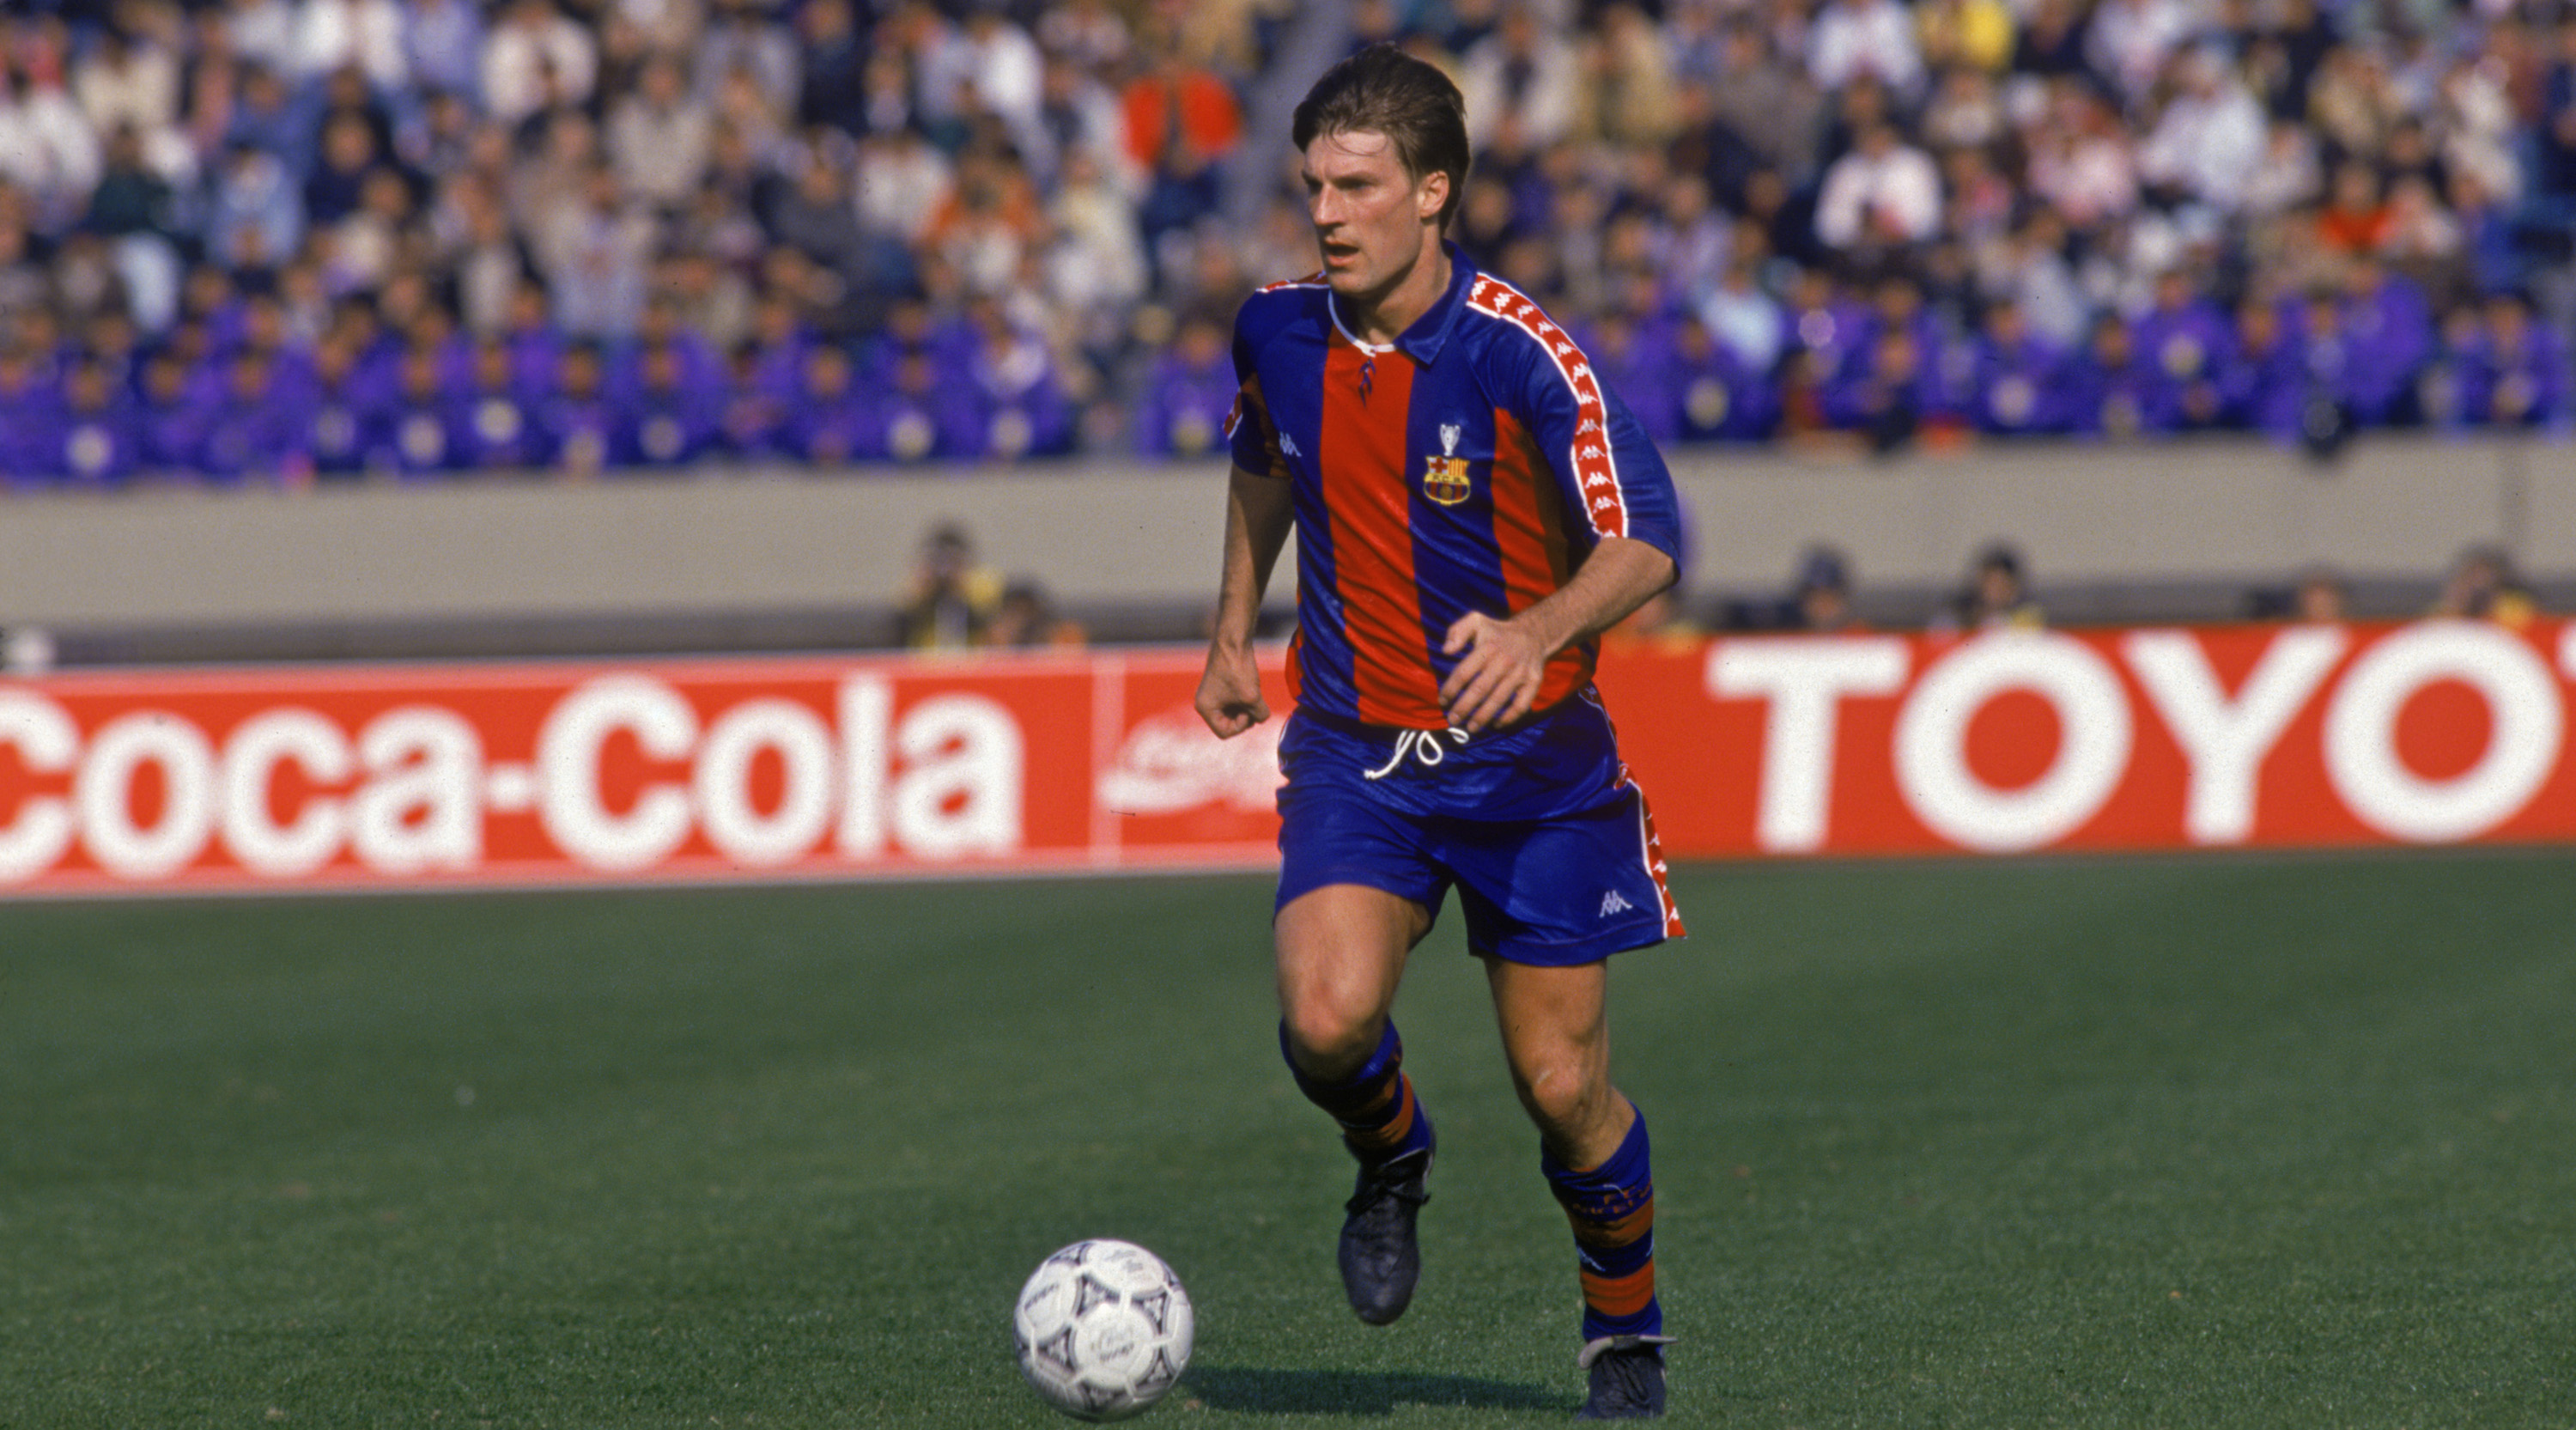 Danish footballer Michael Laudrup playing for the Spanish club FC Barcelona, early 1990s. (Photo by Shaun Botterill/Getty Images)